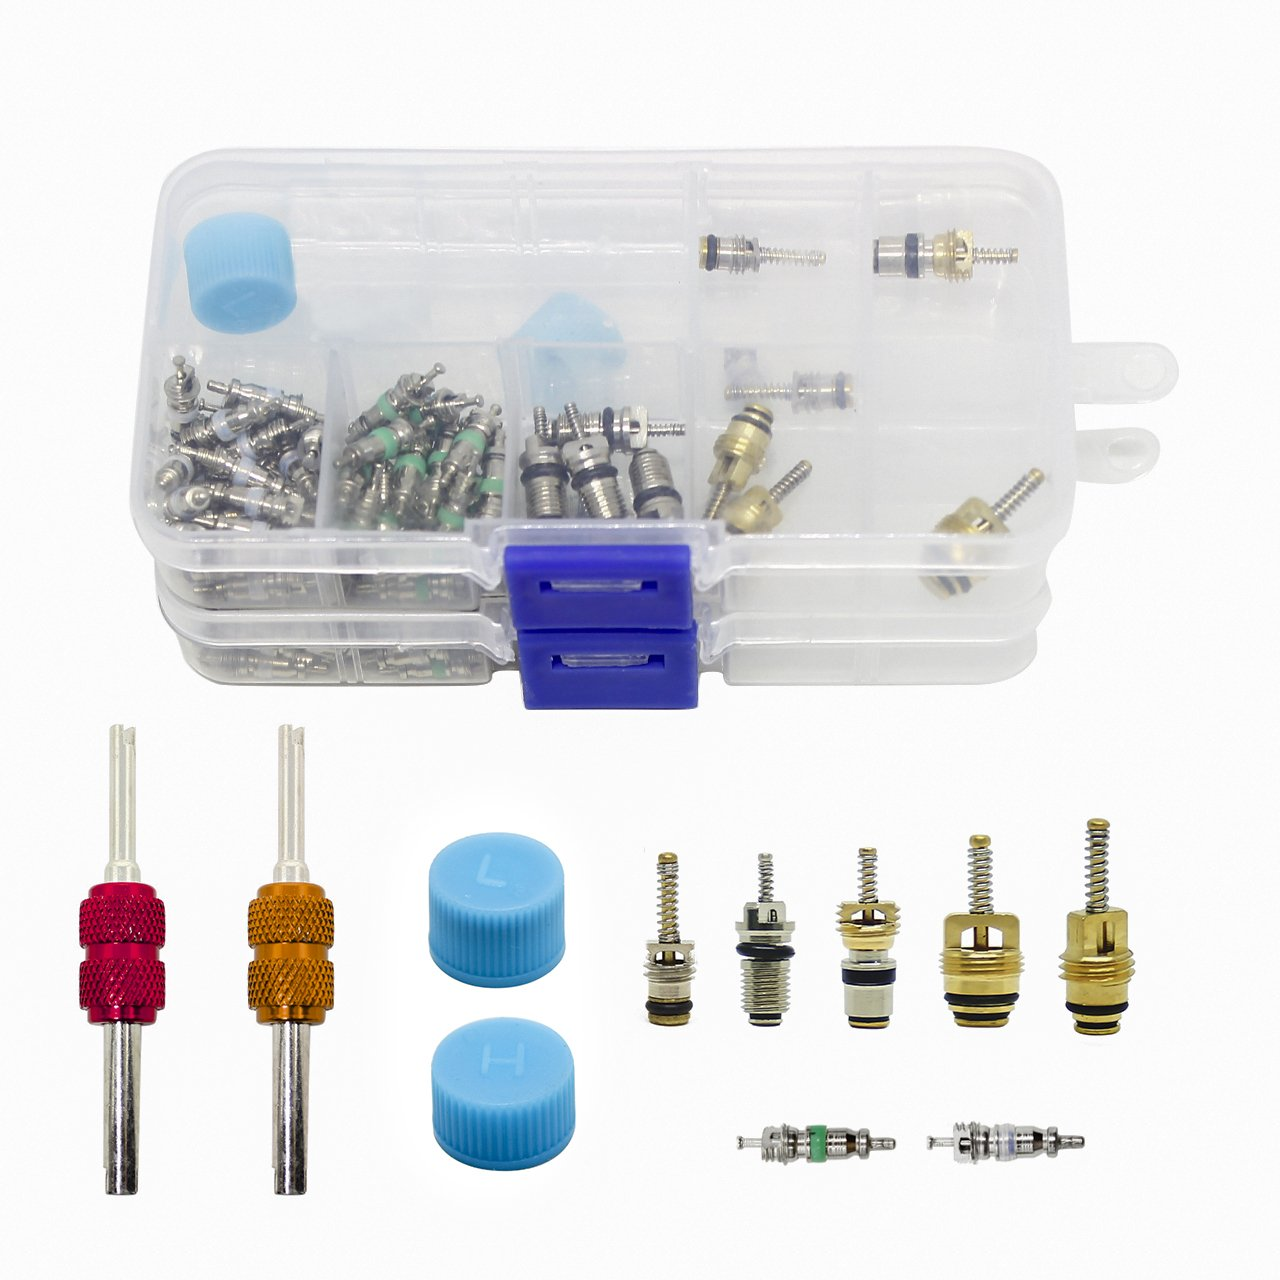 DEDC Air Conditioning Valve Core Set, 108Pcs A/C R134A/R12 Valve Cores Kit Universal Air Conditioning Accessories Assortment with Remover Tool Valve Cap in Two Box